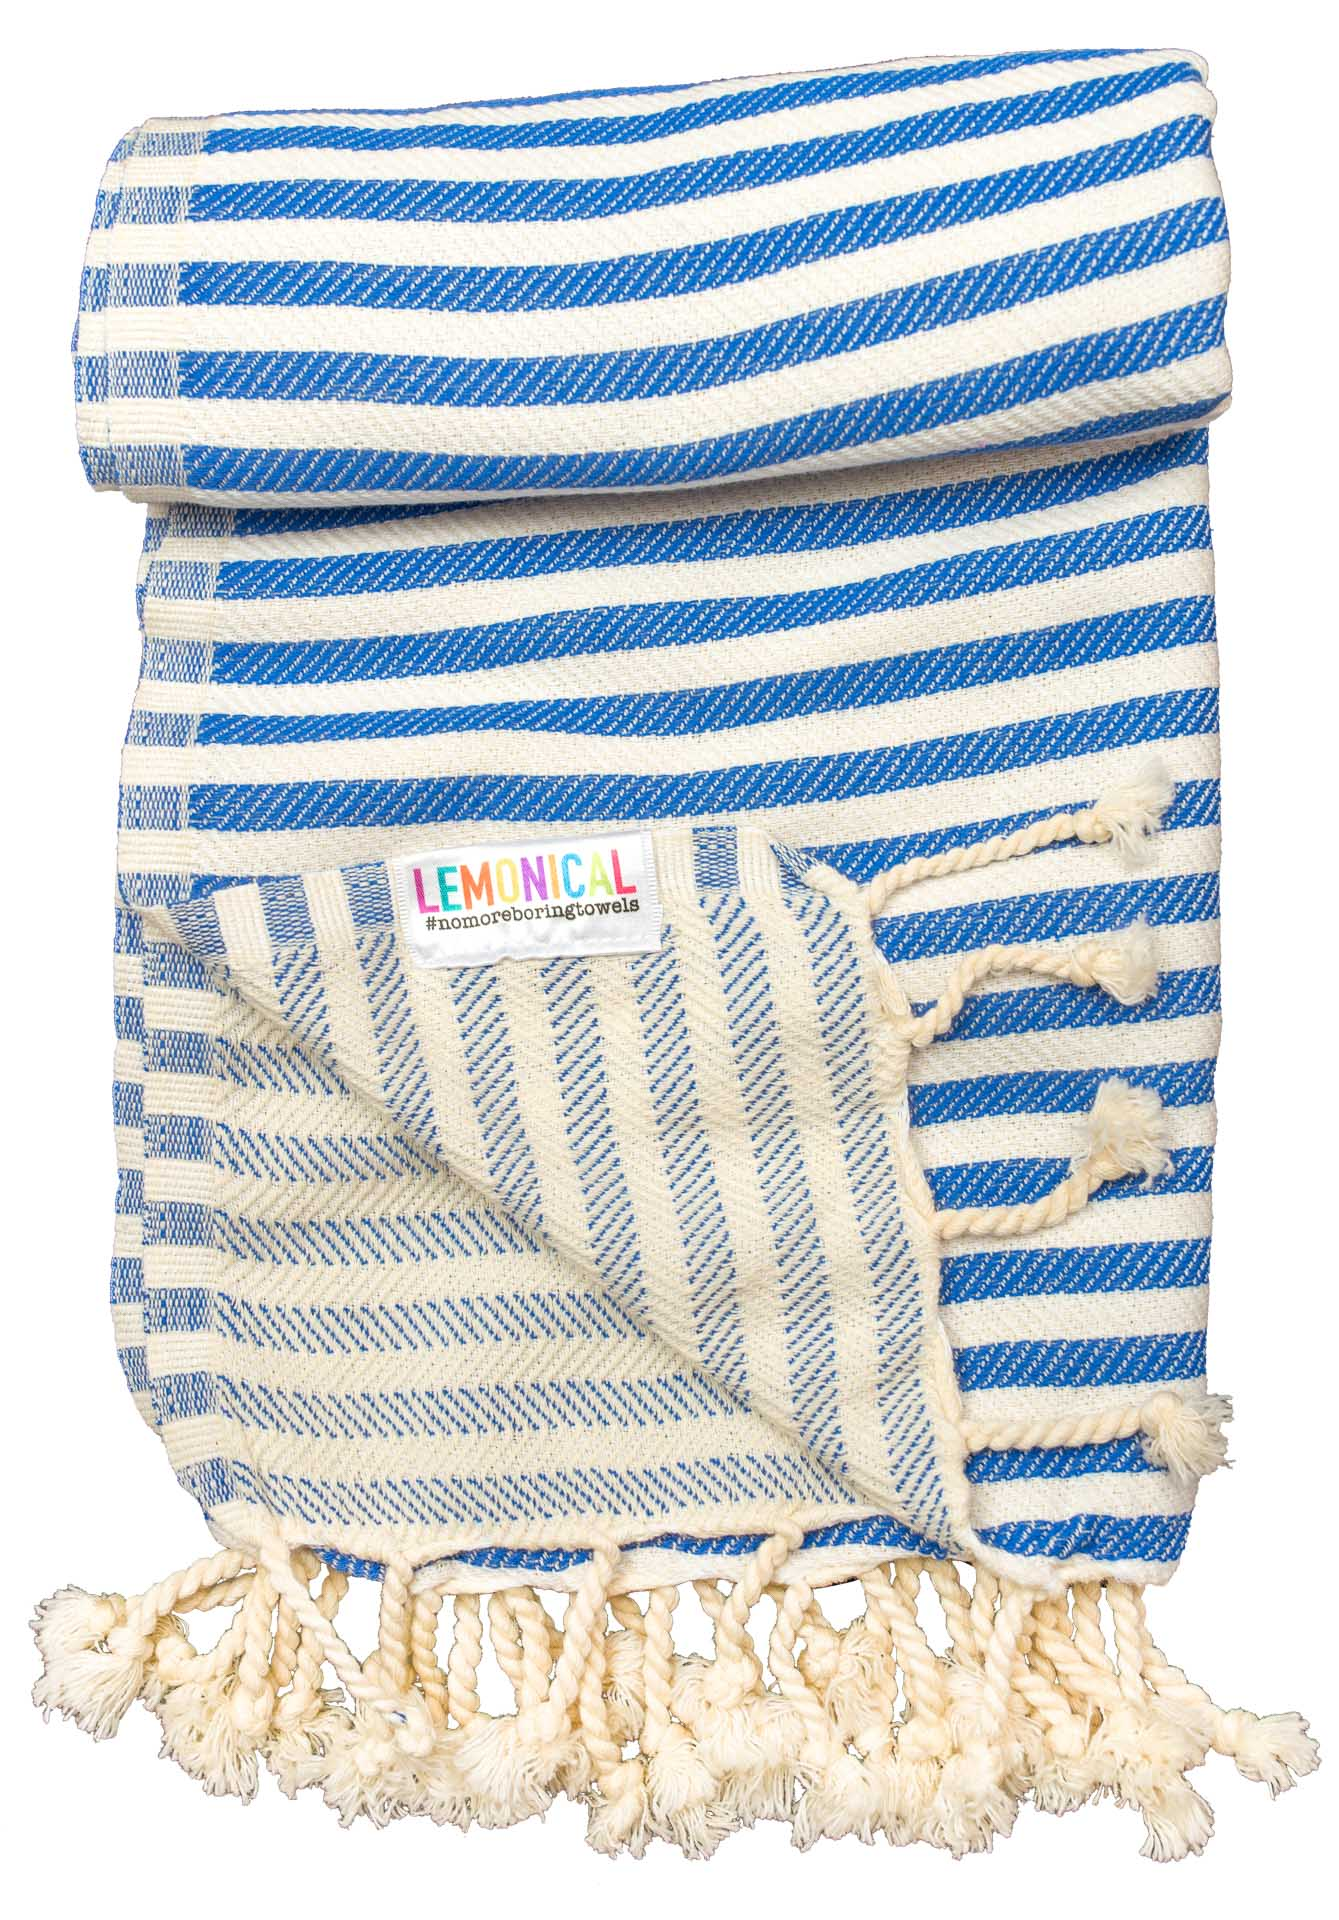 NAUTIC-BLUE-Towel-Lemonical-3